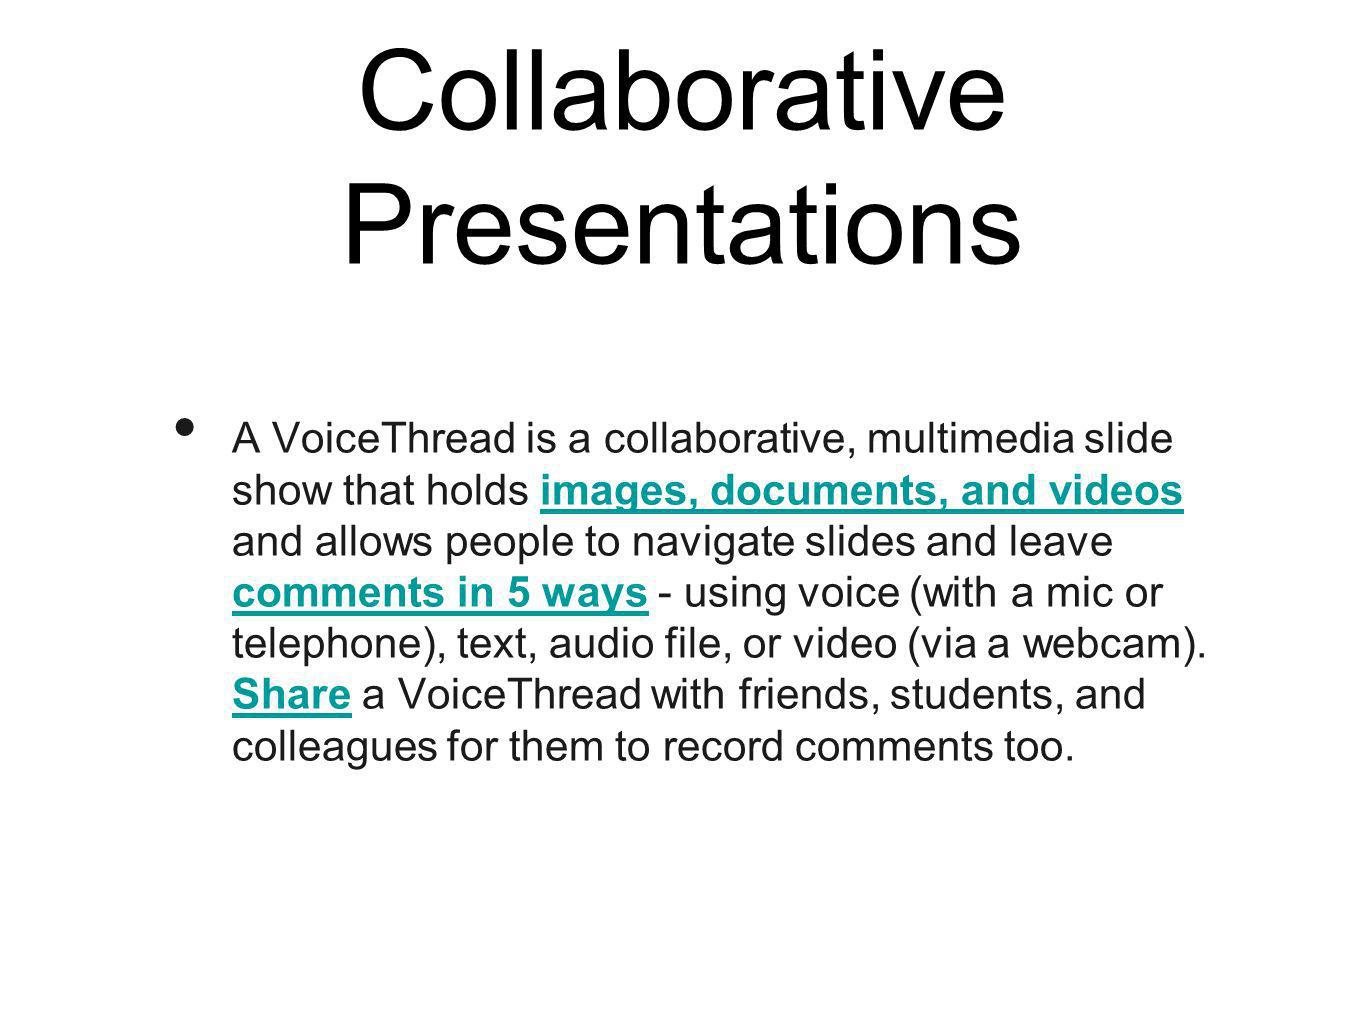 Collaborative Presentations A VoiceThread is a collaborative, multimedia slide show that holds images, documents, and videos and allows people to navigate slides and leave comments in 5 ways - using voice (with a mic or telephone), text, audio file, or video (via a webcam).